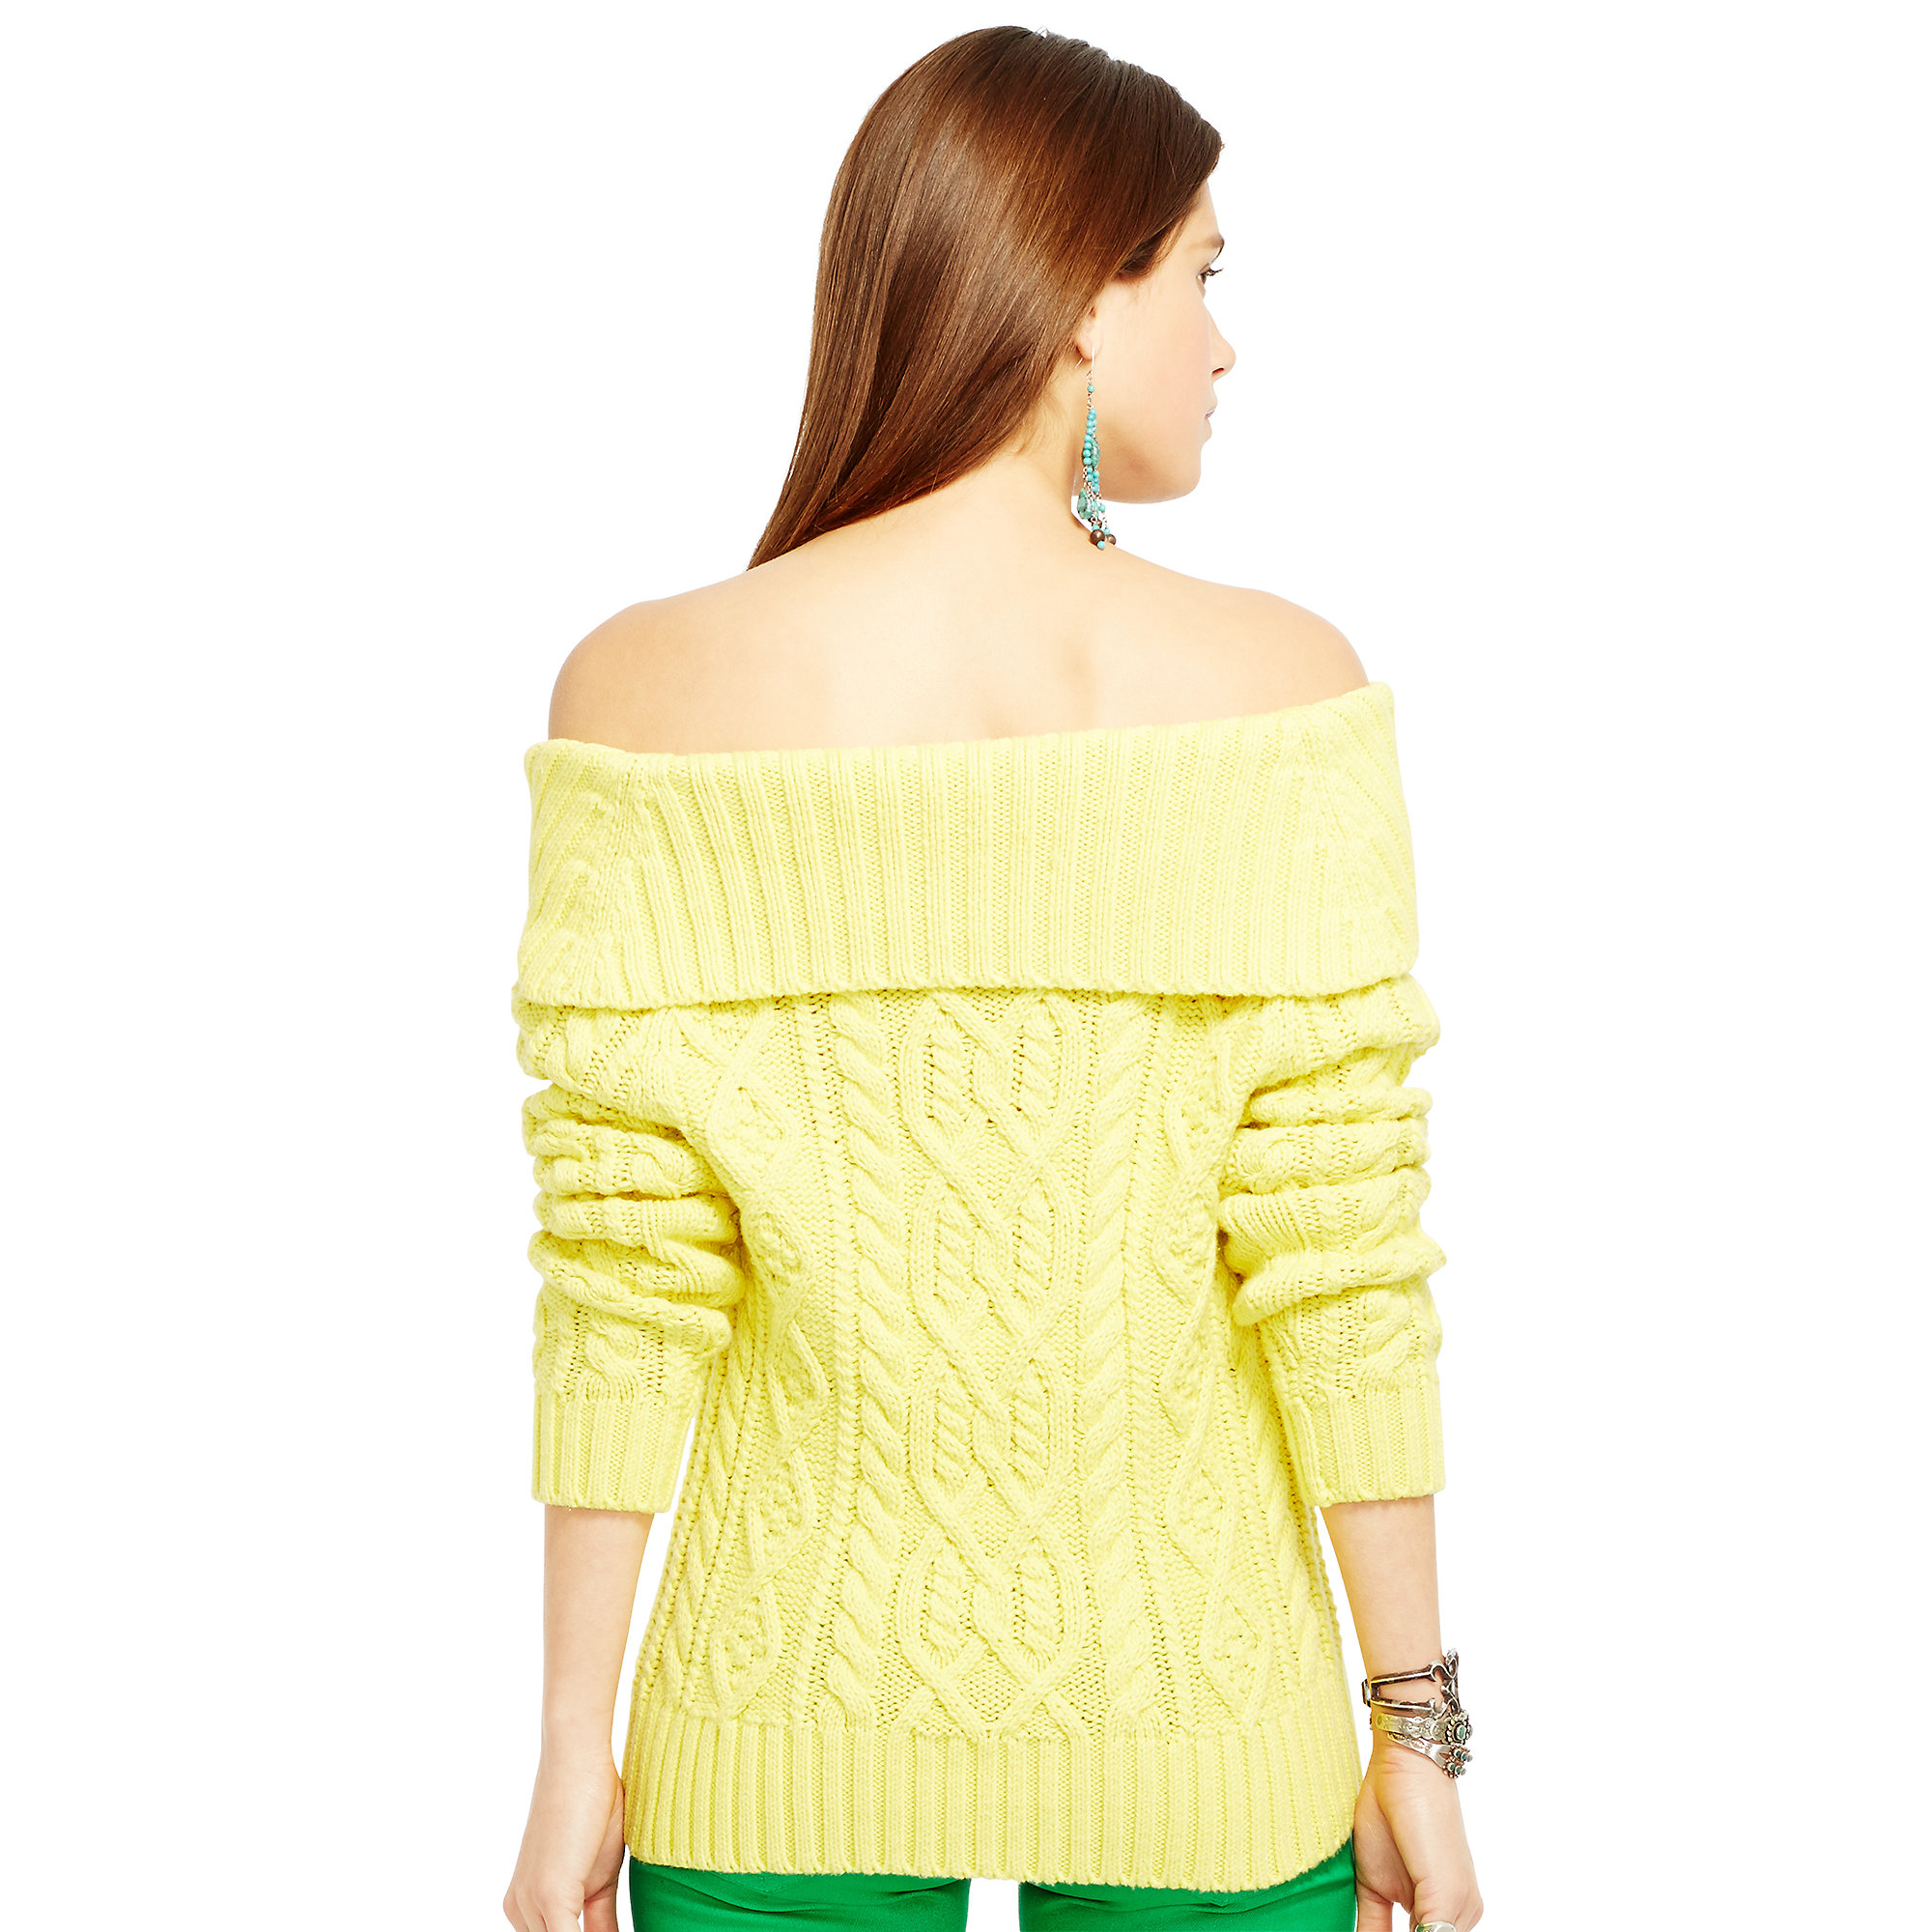 Polo ralph lauren Off-The-Shoulder Sweater in Yellow | Lyst